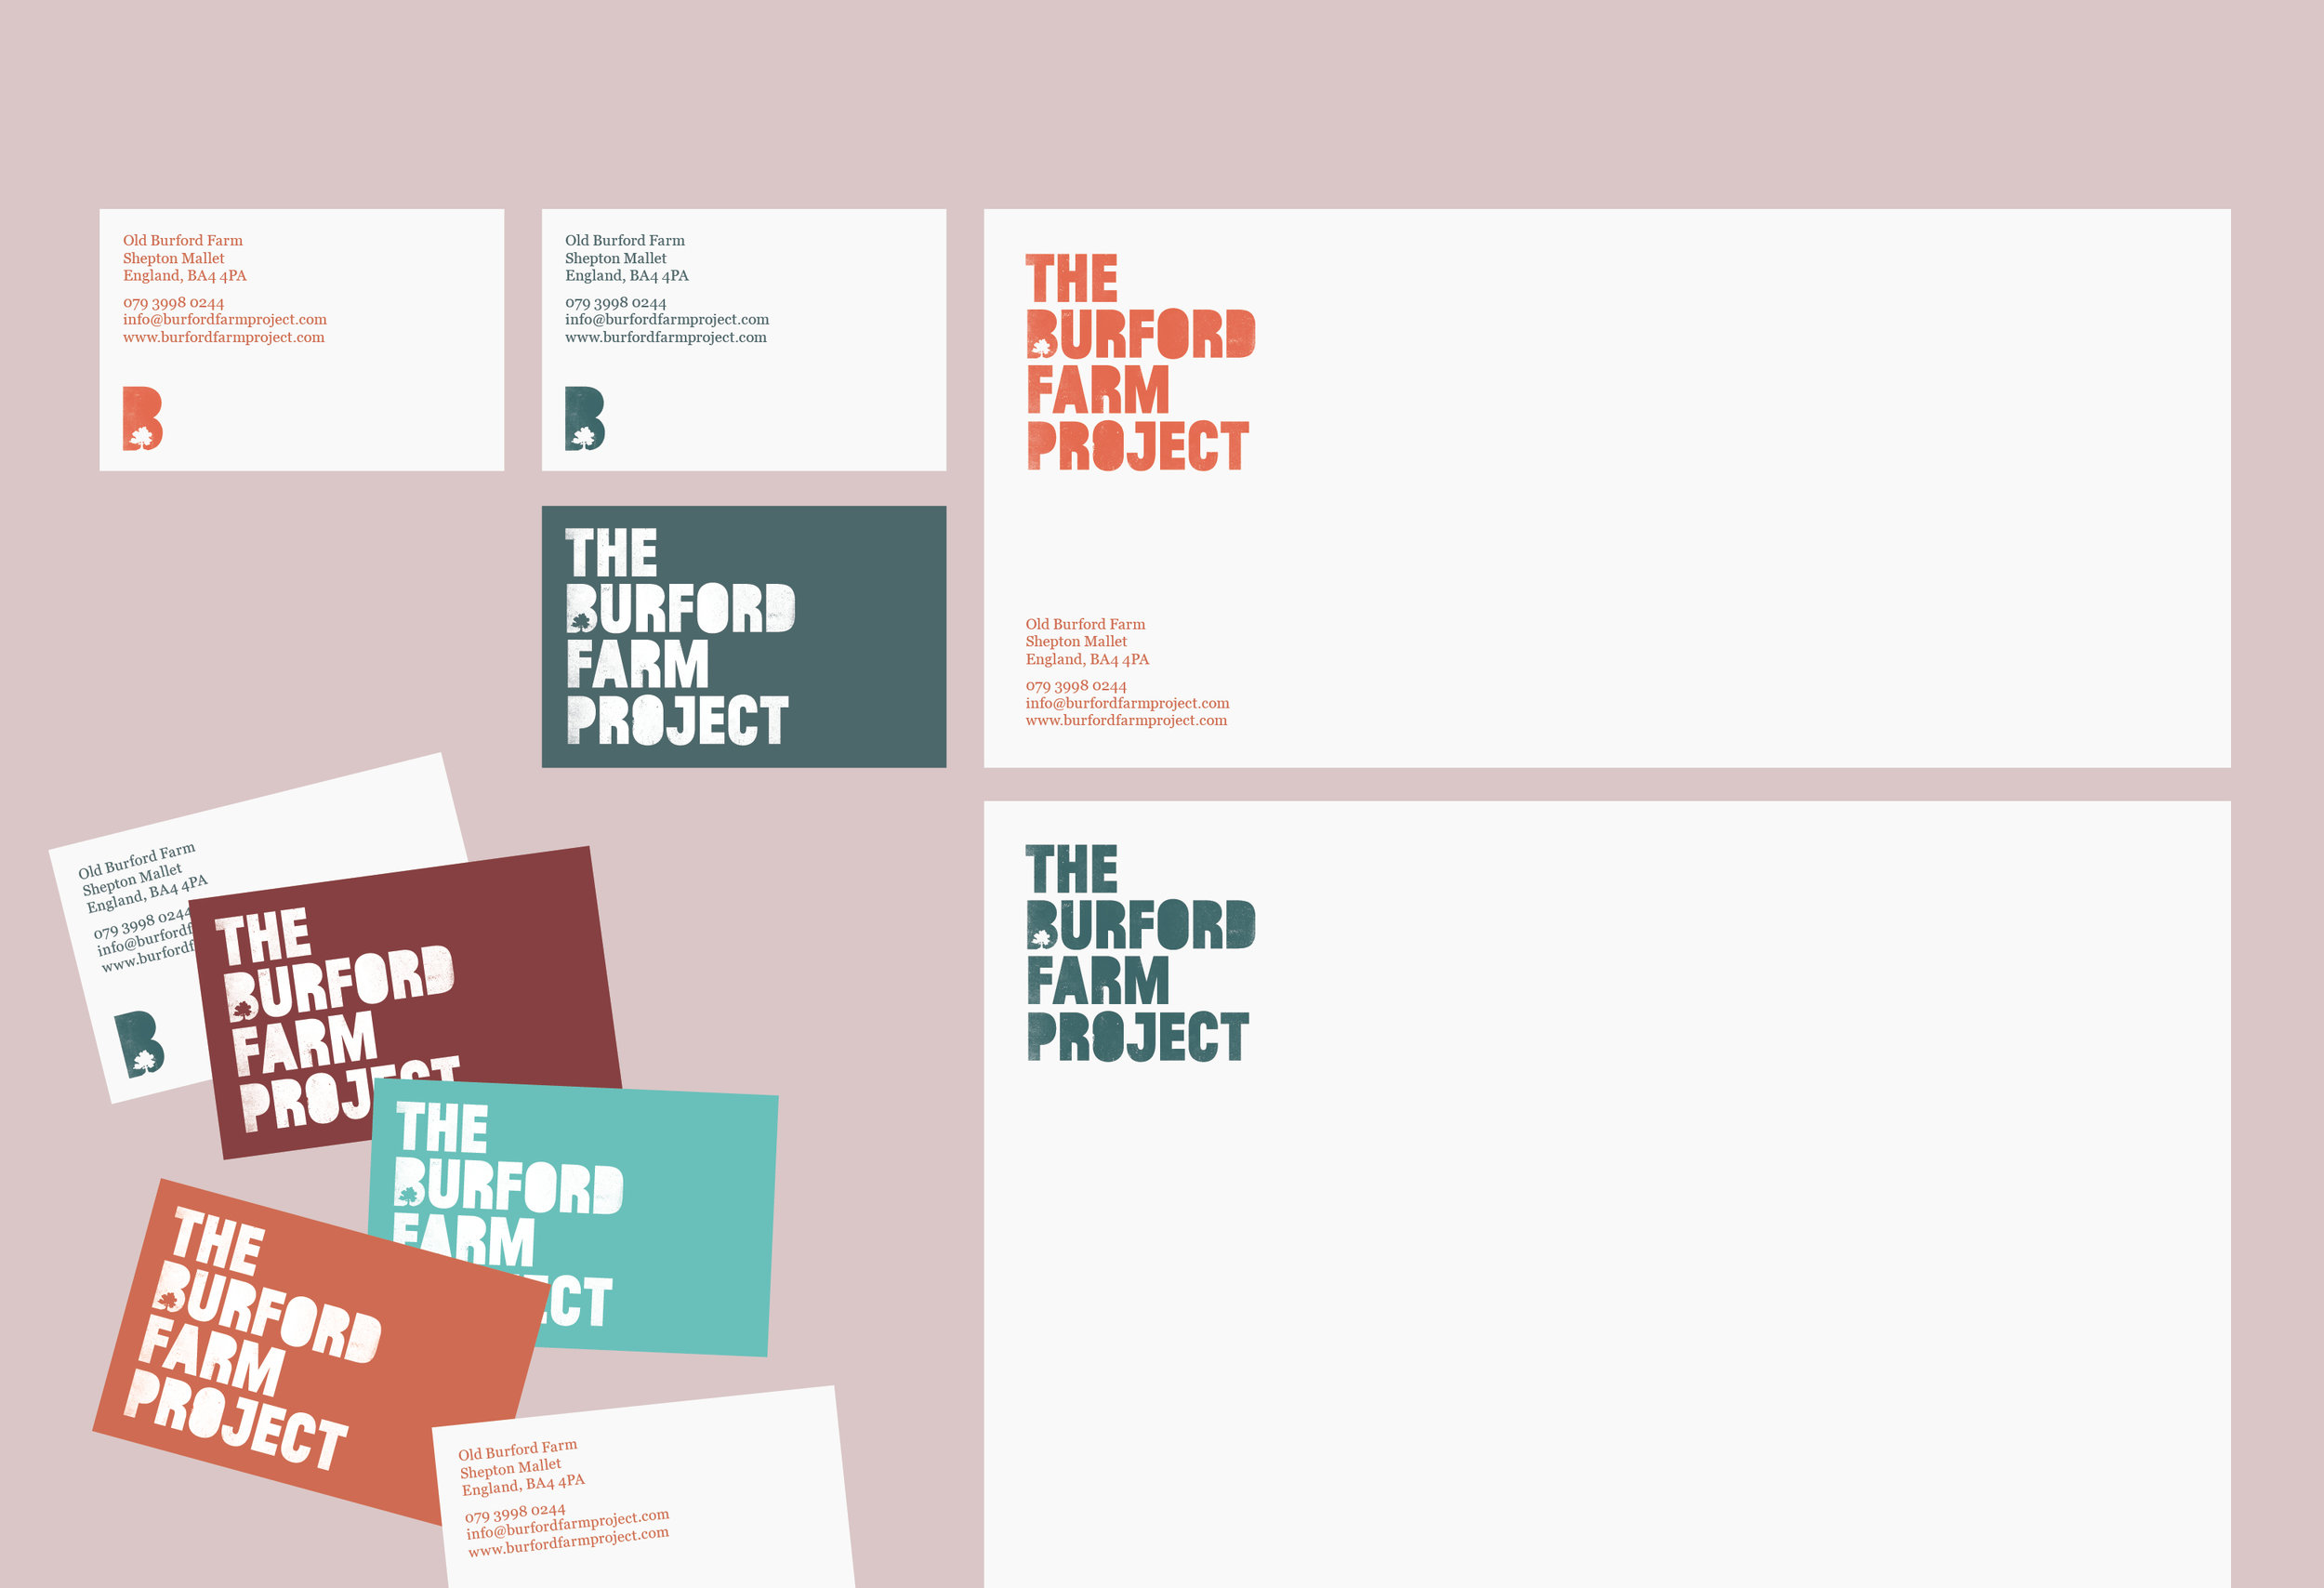 The_Burford_Farm_Project_Company_identity_design_Alan_Clarke-Symonds_graphic_design_project_stationery2.jpg